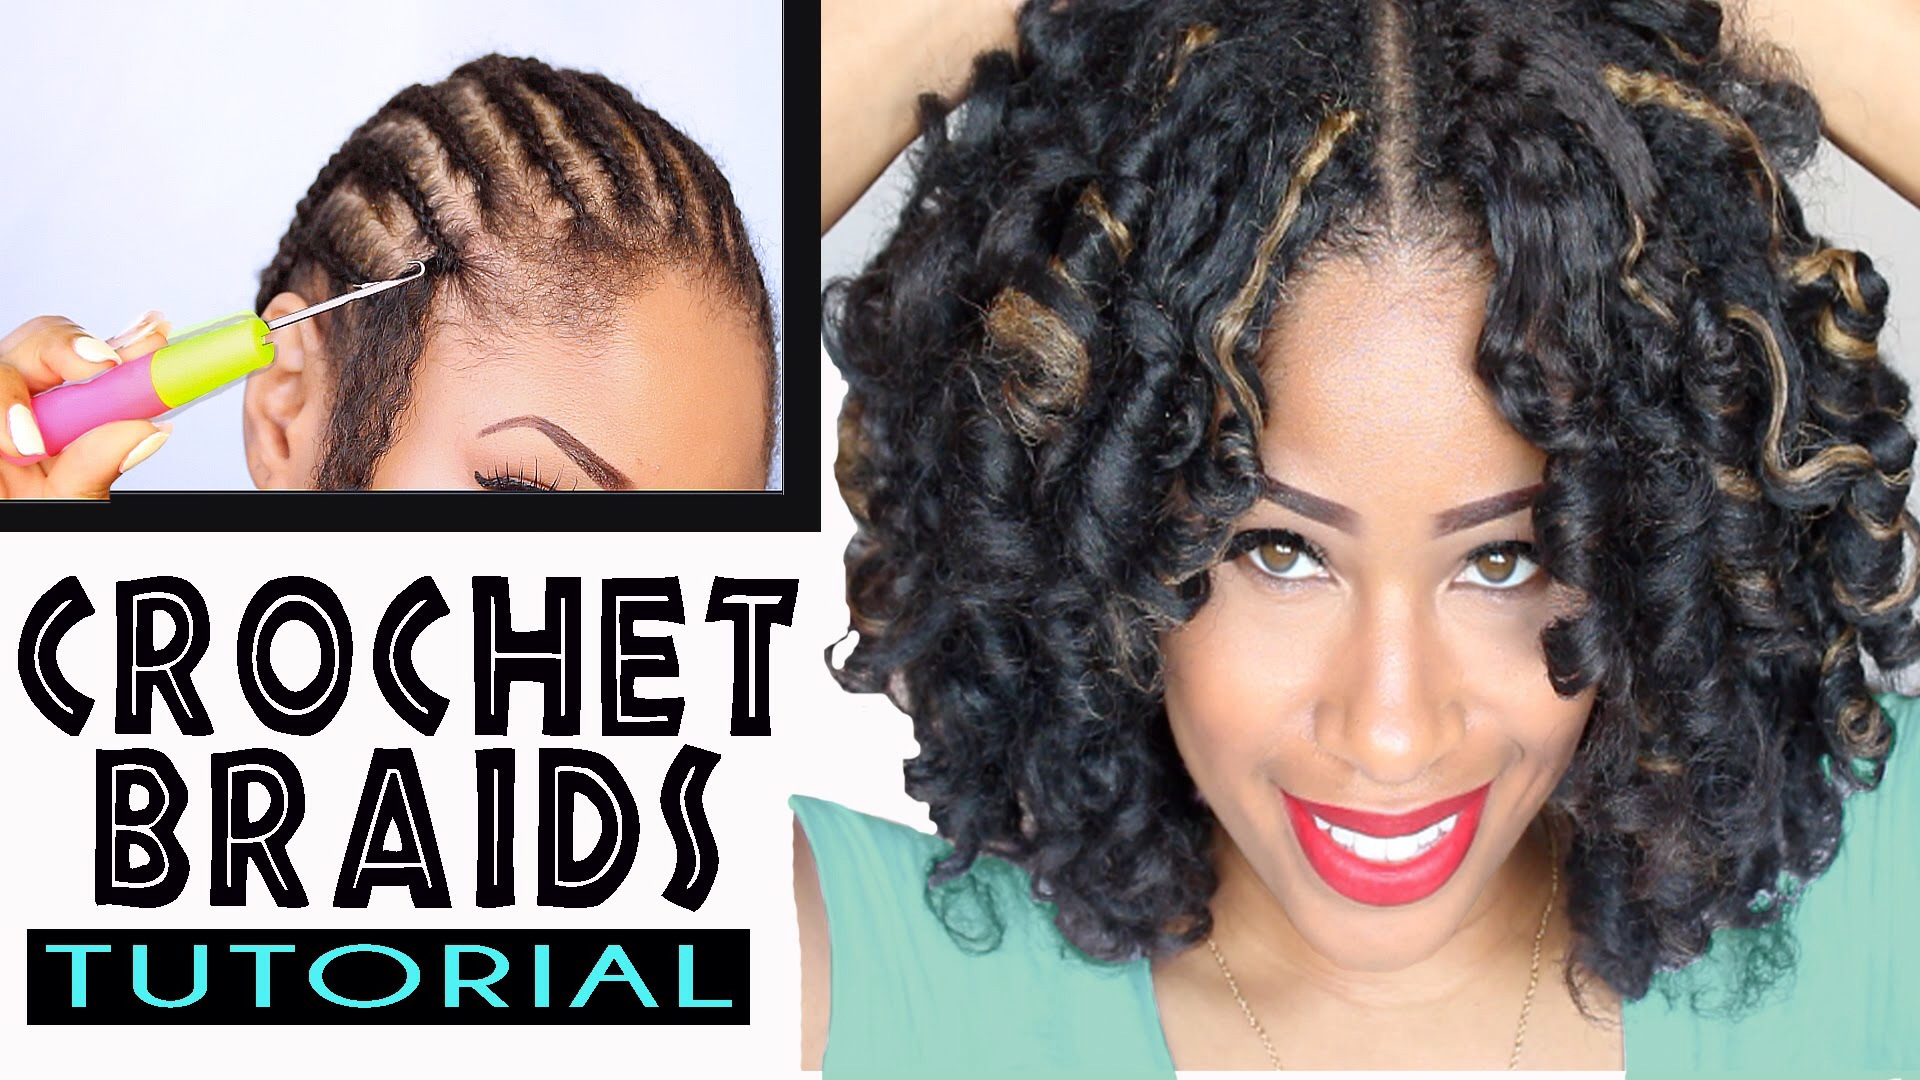 Crochet Hair That Looks Real : crotchet braids hair technique Viviannesblog